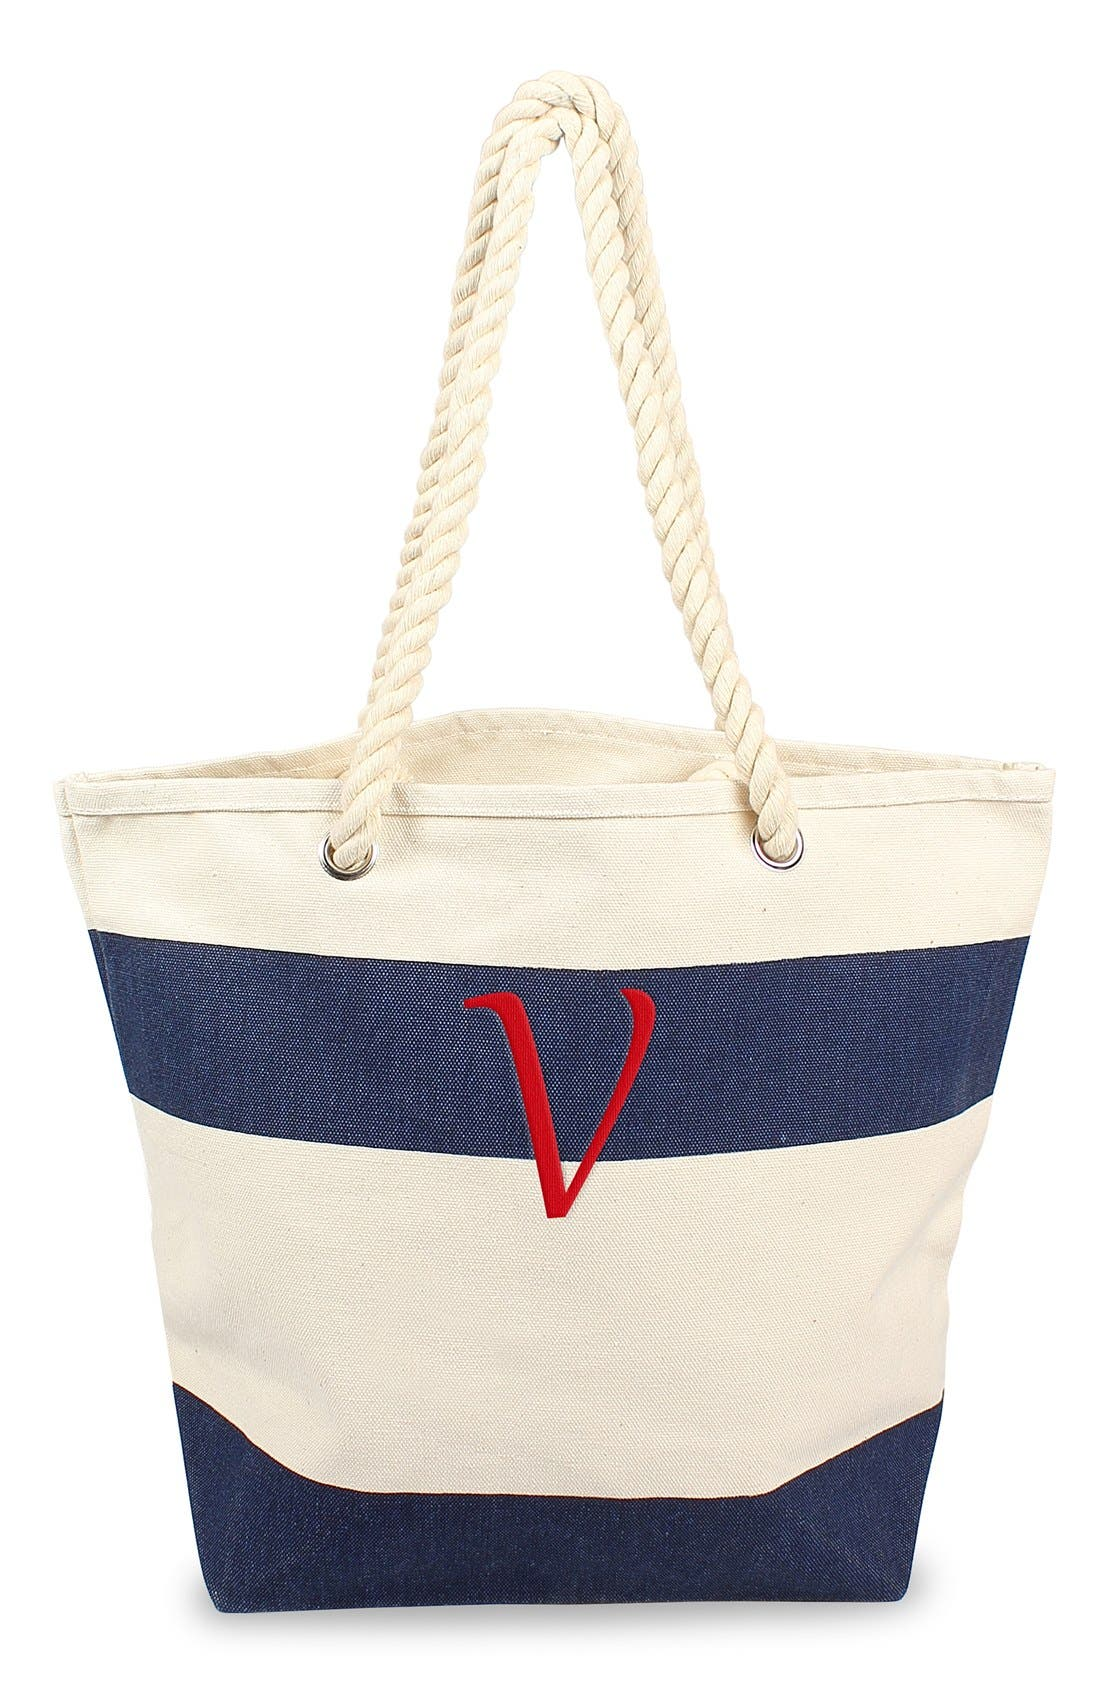 CATHY'S CONCEPTS, Monogram Stripe Canvas Tote, Main thumbnail 1, color, 432